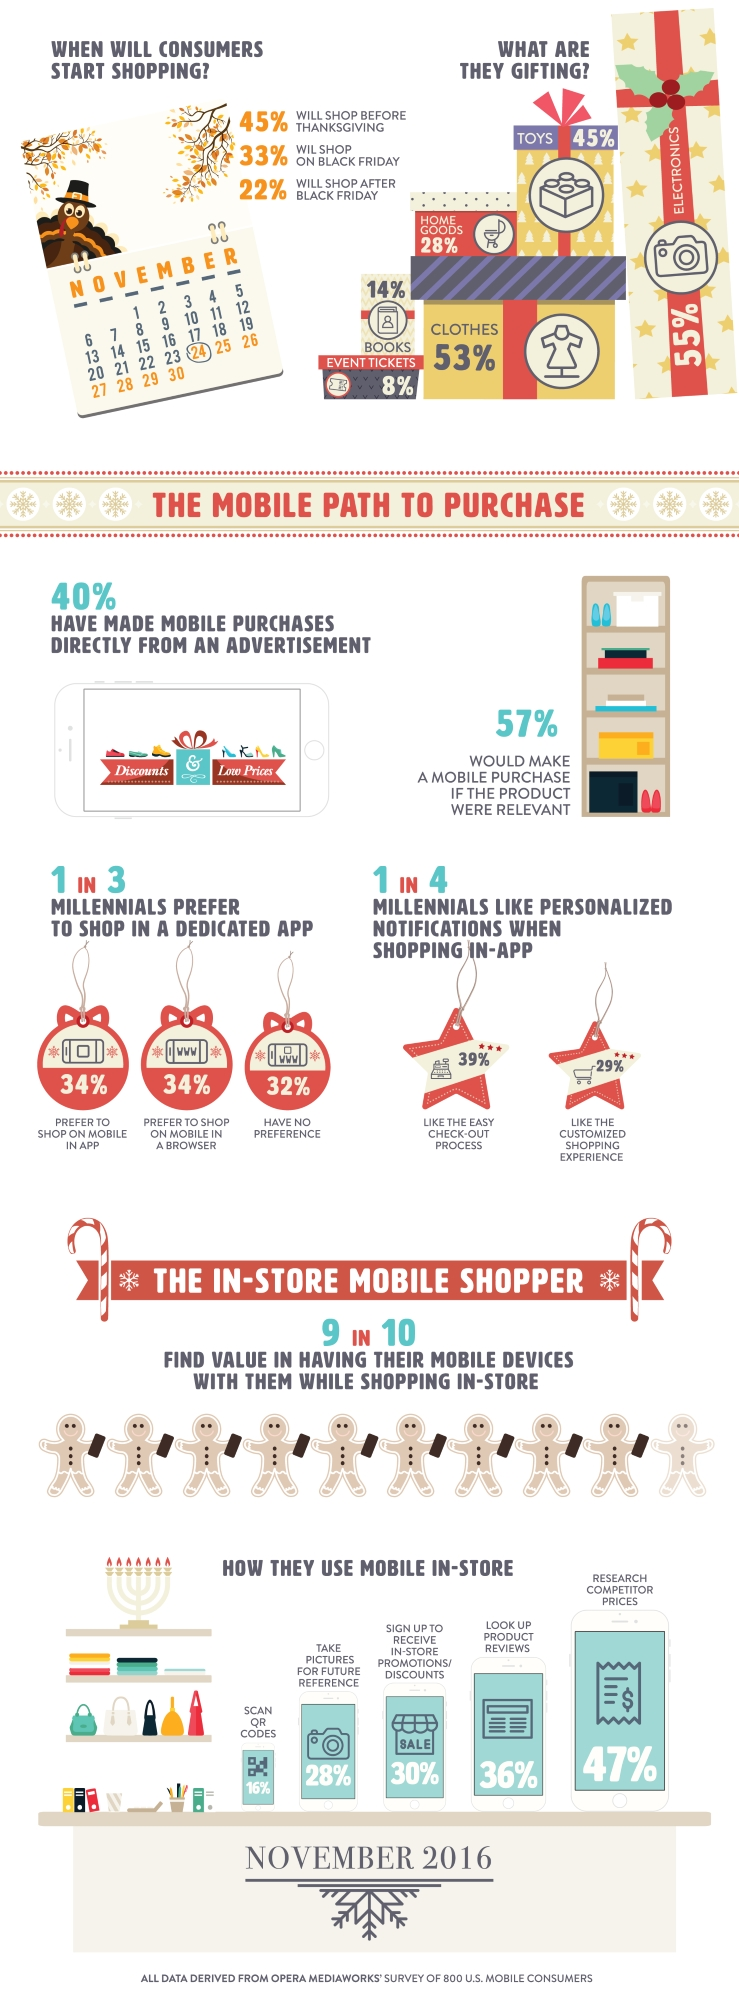 Infographic: Mobile Sites and Apps Neck-and-neck for Christmas Shoppers